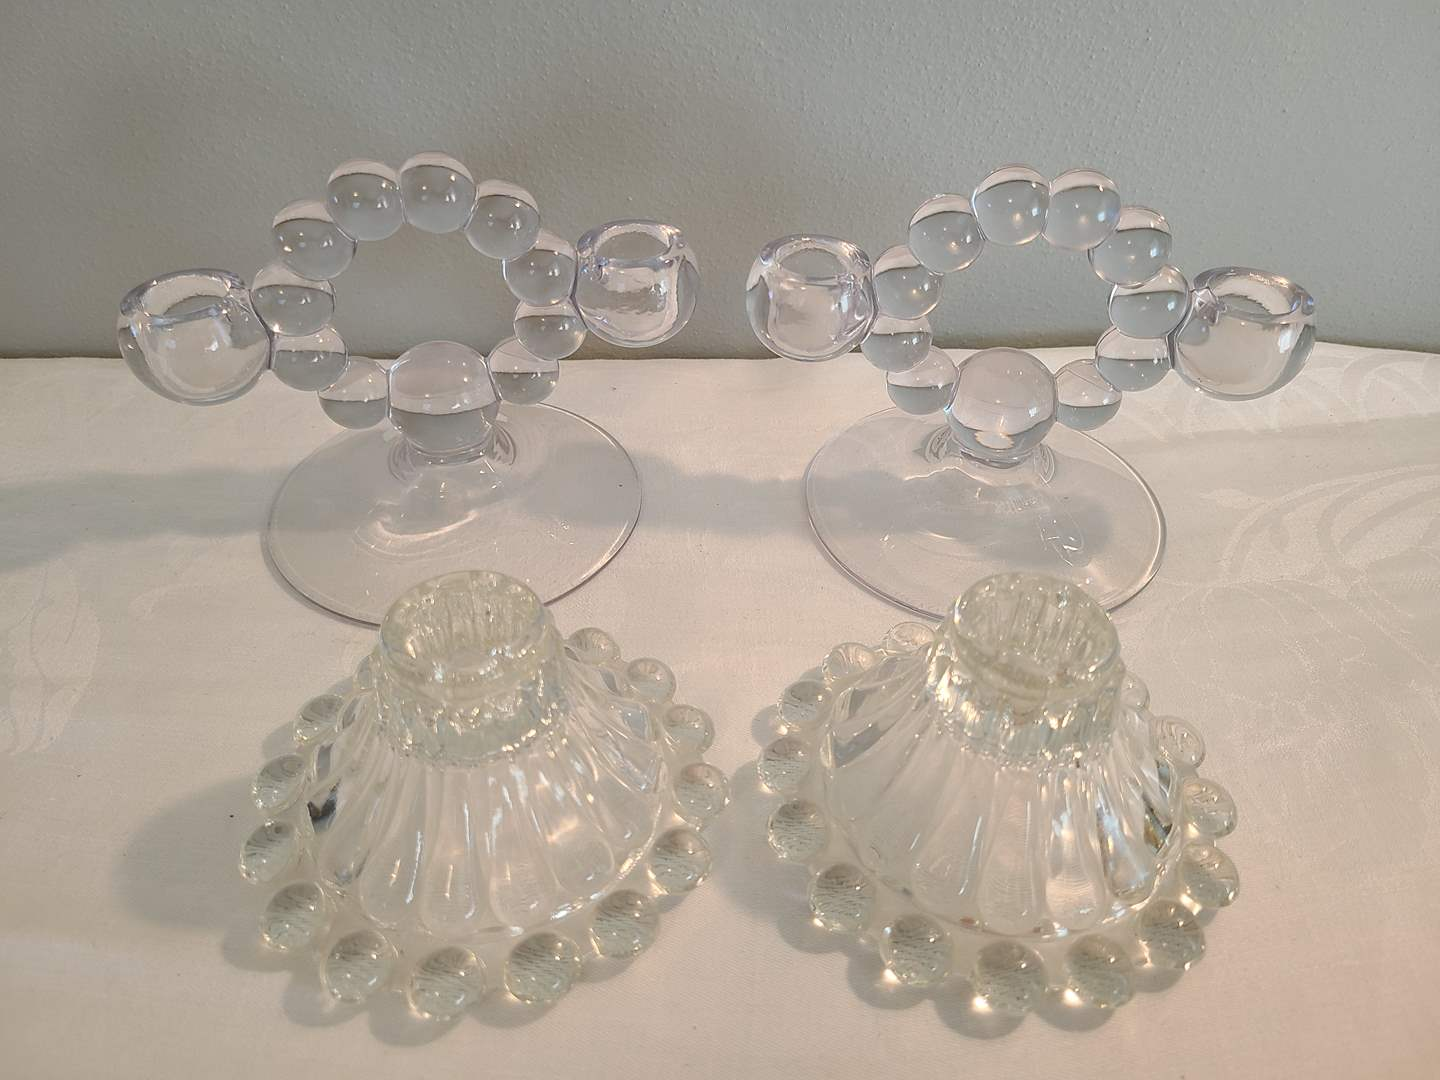 Lot# 178 - 2 Sets of Beautiful Glass / Crystal? Candle Holders (main image)